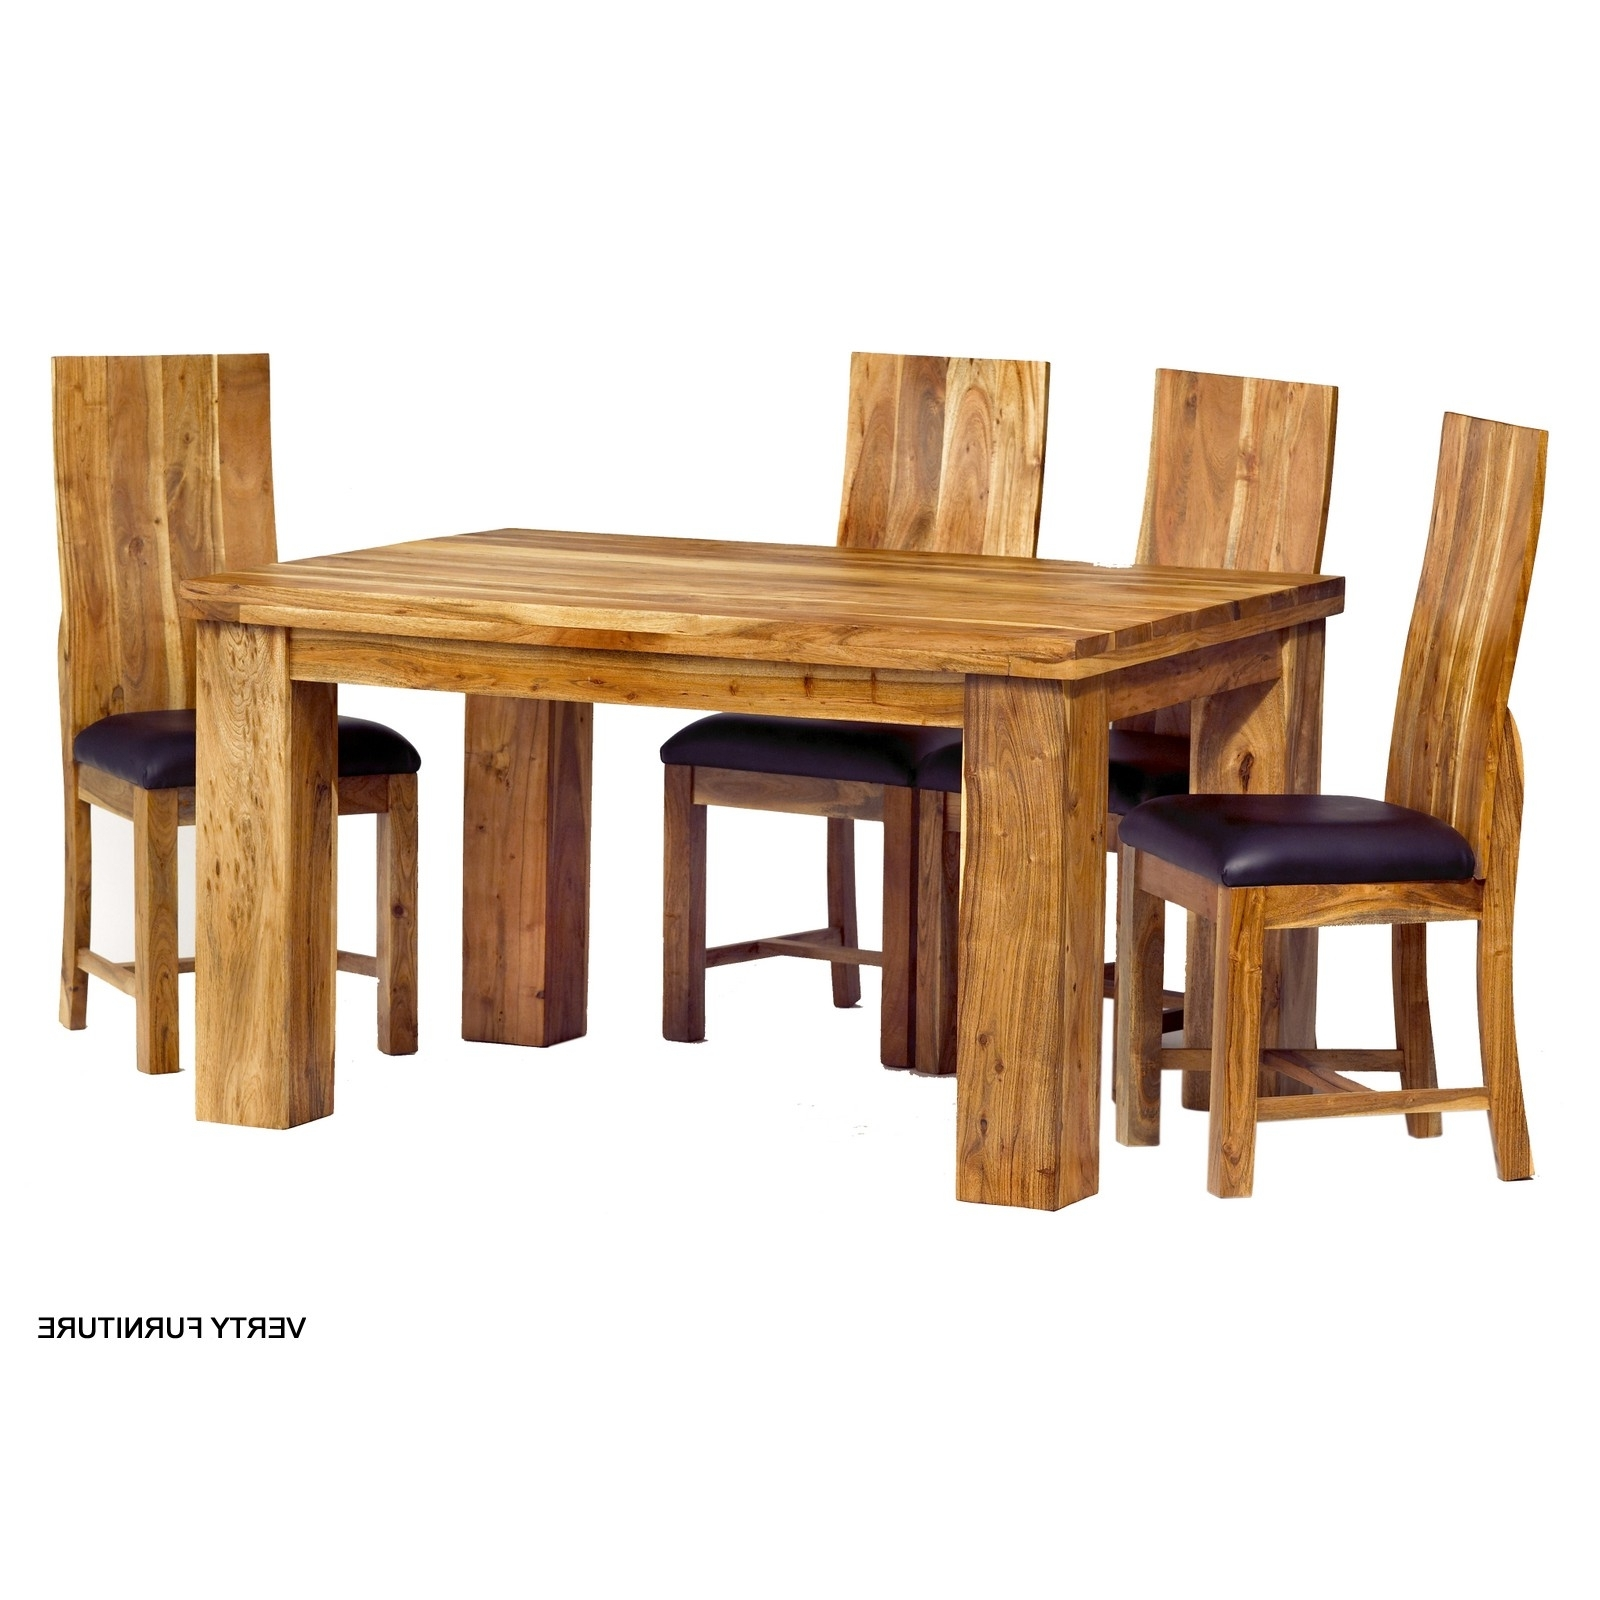 Indian Dining Chairs In Preferred Acacia Dining Table – Small With 4 Chairs – Verty Indian Furniture (View 11 of 25)